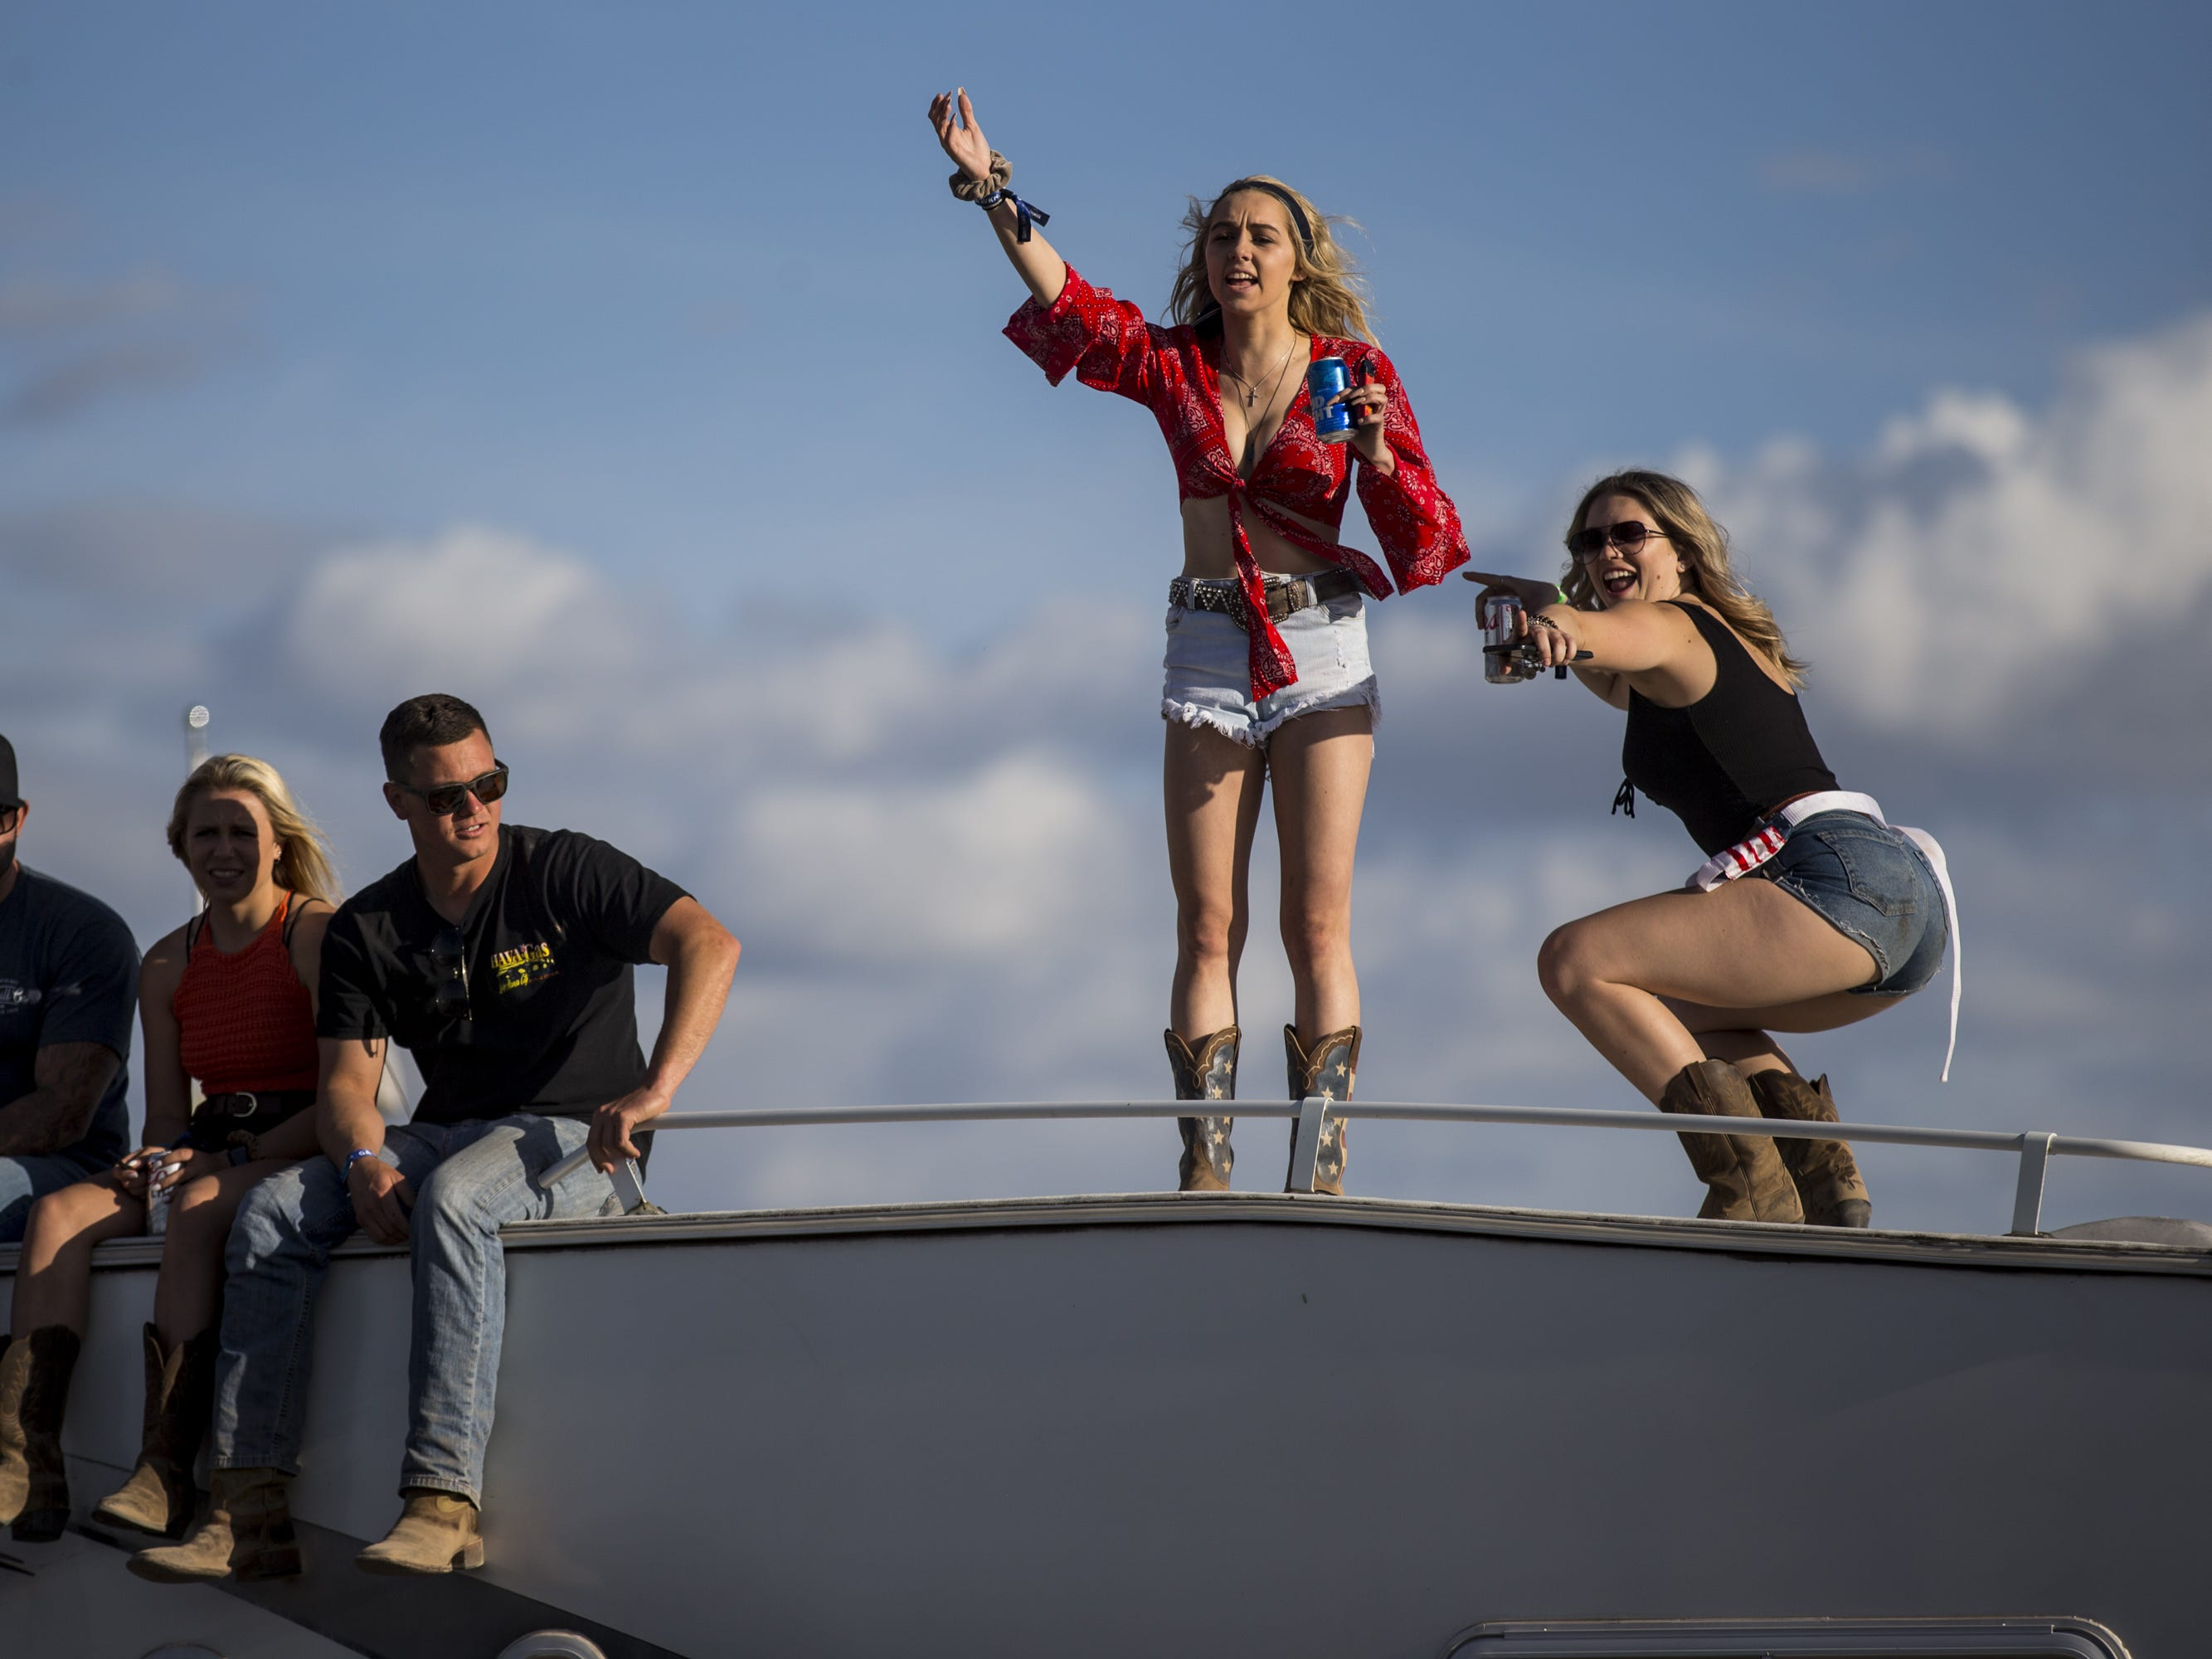 Festival-goers dance on top of an RV on Friday, April 12, 2019, during Day 2 of Country Thunder Arizona in Florence, Ariz.